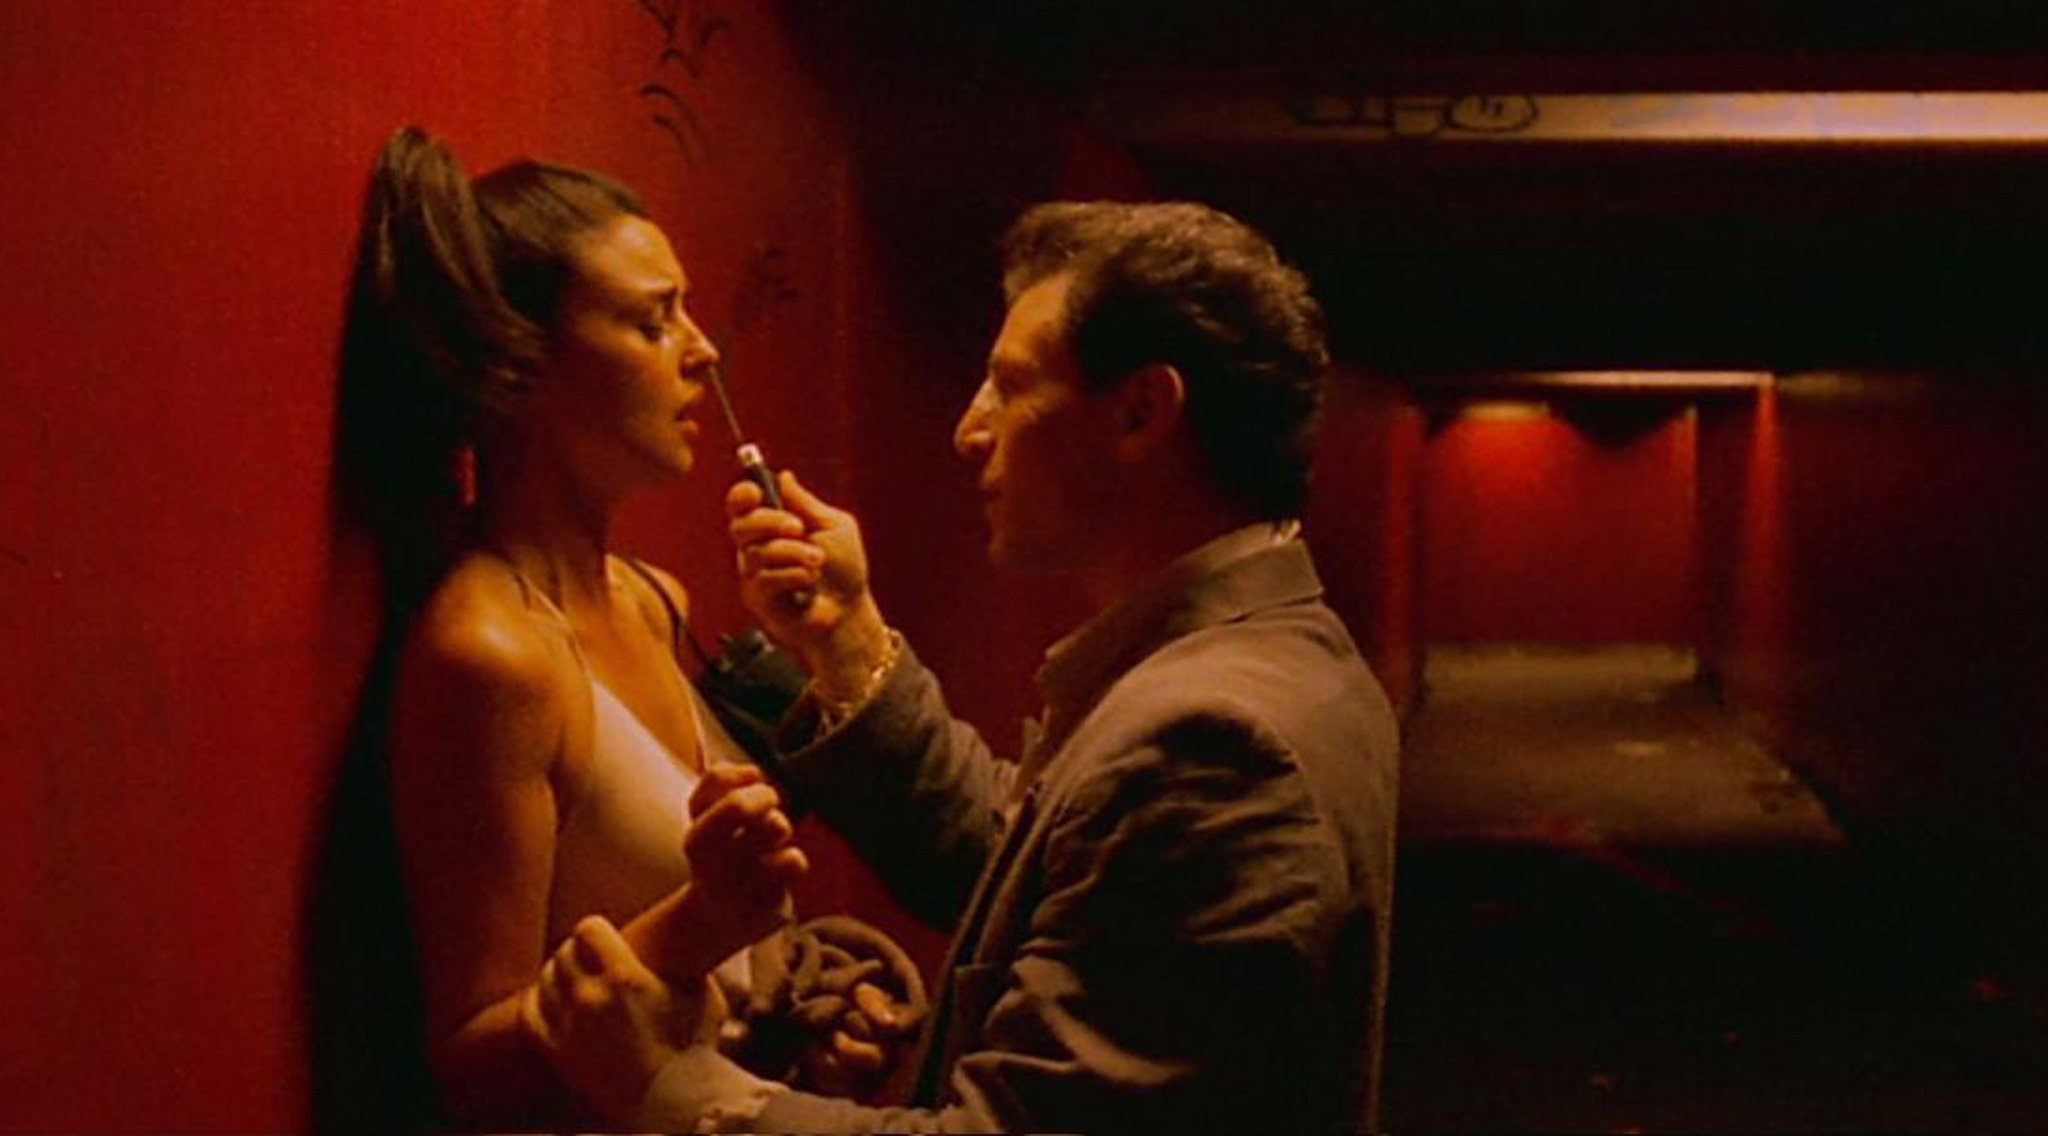 Ten harrowing films you can't unsee: Irreversible